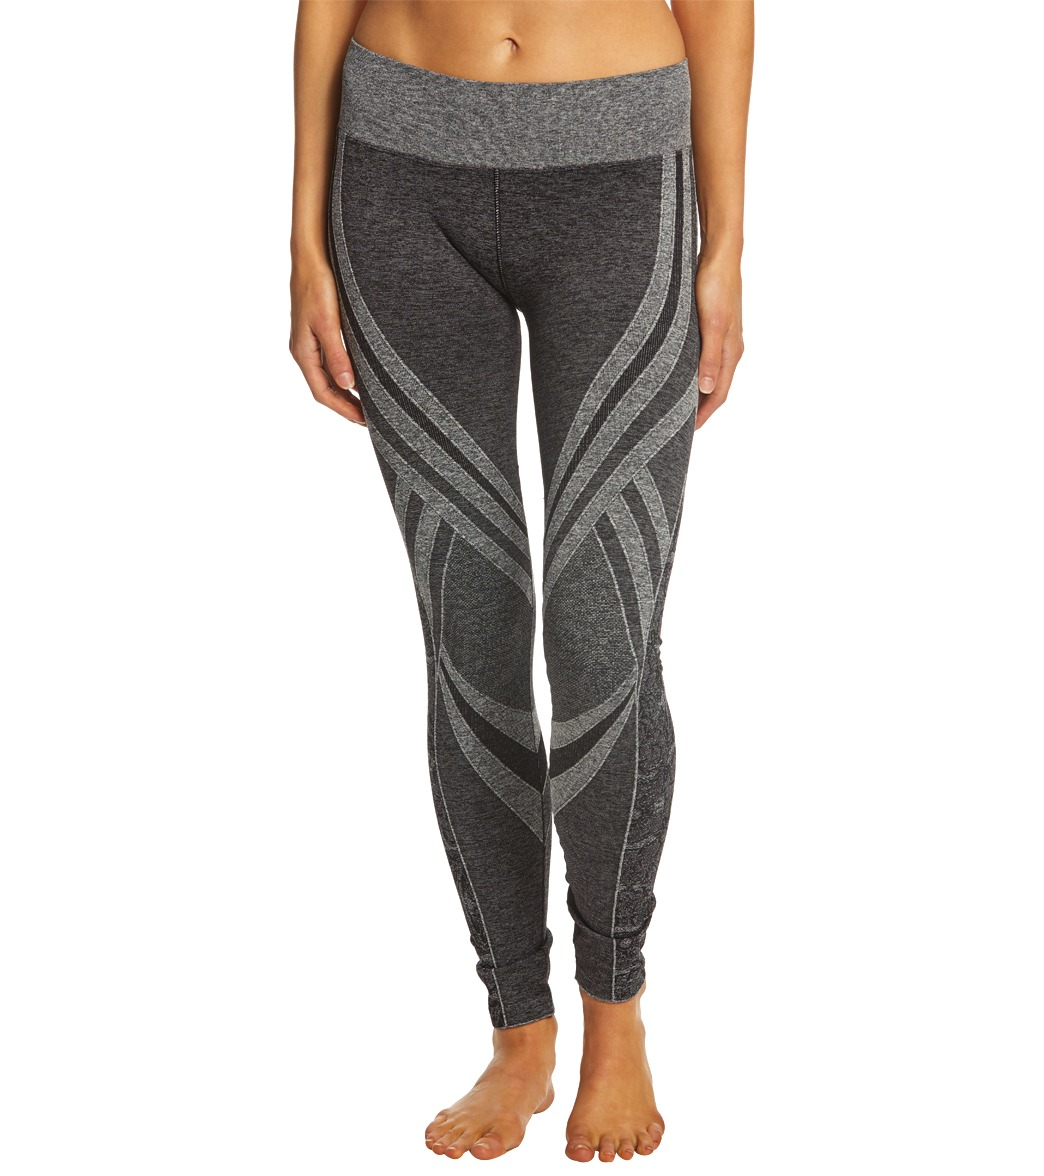 ff682cdf380c1 NUX Ebb & Flow Seamless Yoga Leggings at YogaOutlet.com - Free Shipping